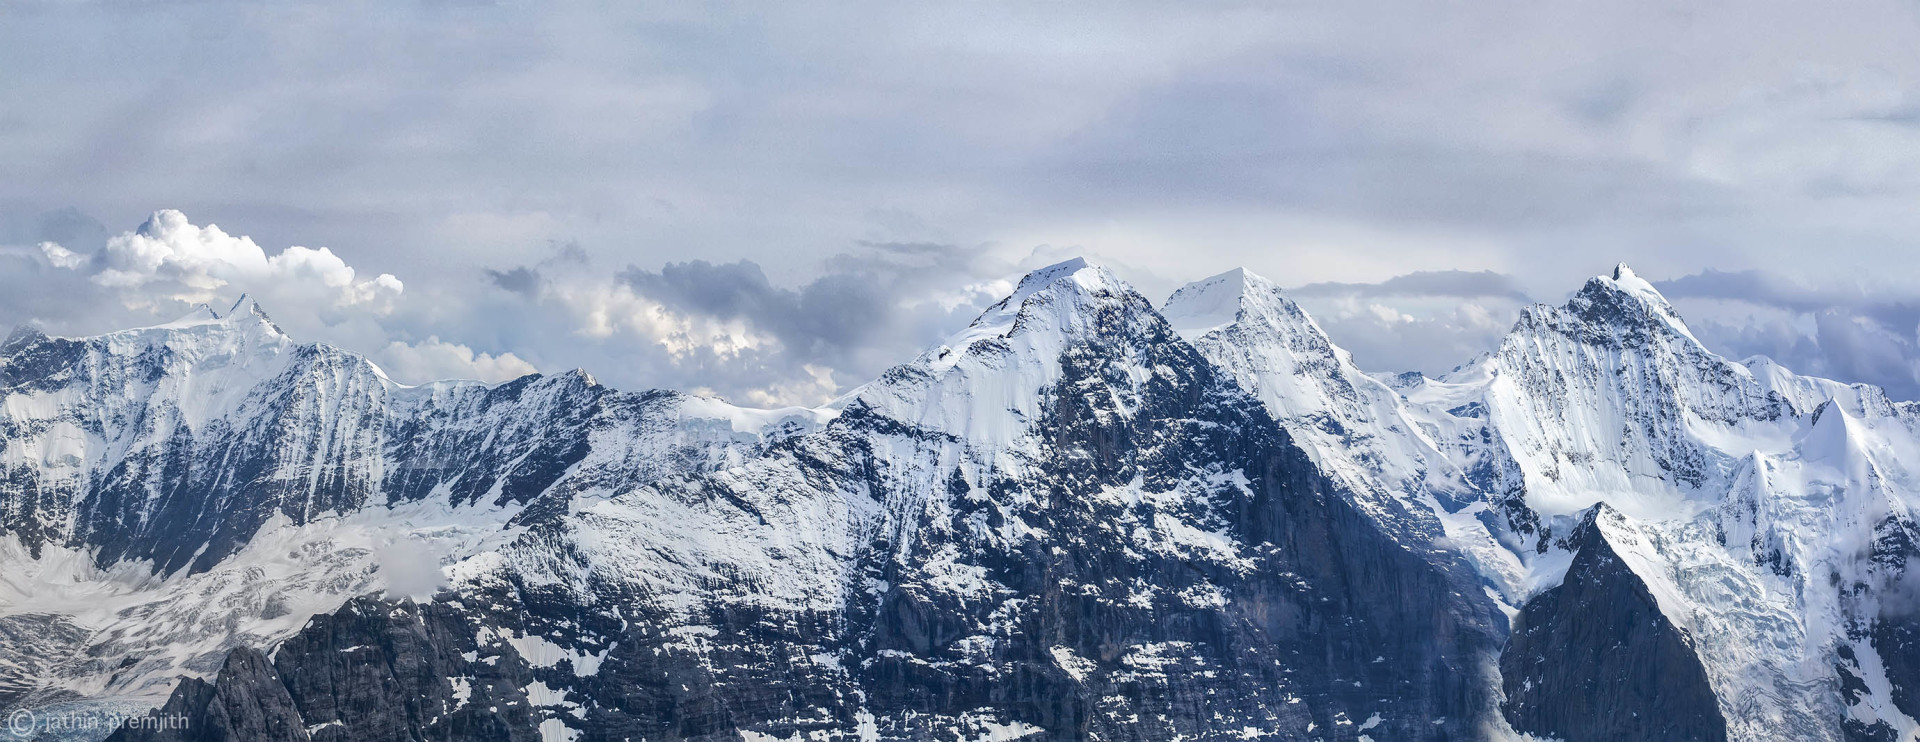 """EIGER - MONCH - JUNGFRAU"" MOUNTAINS  ( ON  THE  RIGHT  SIDE)."